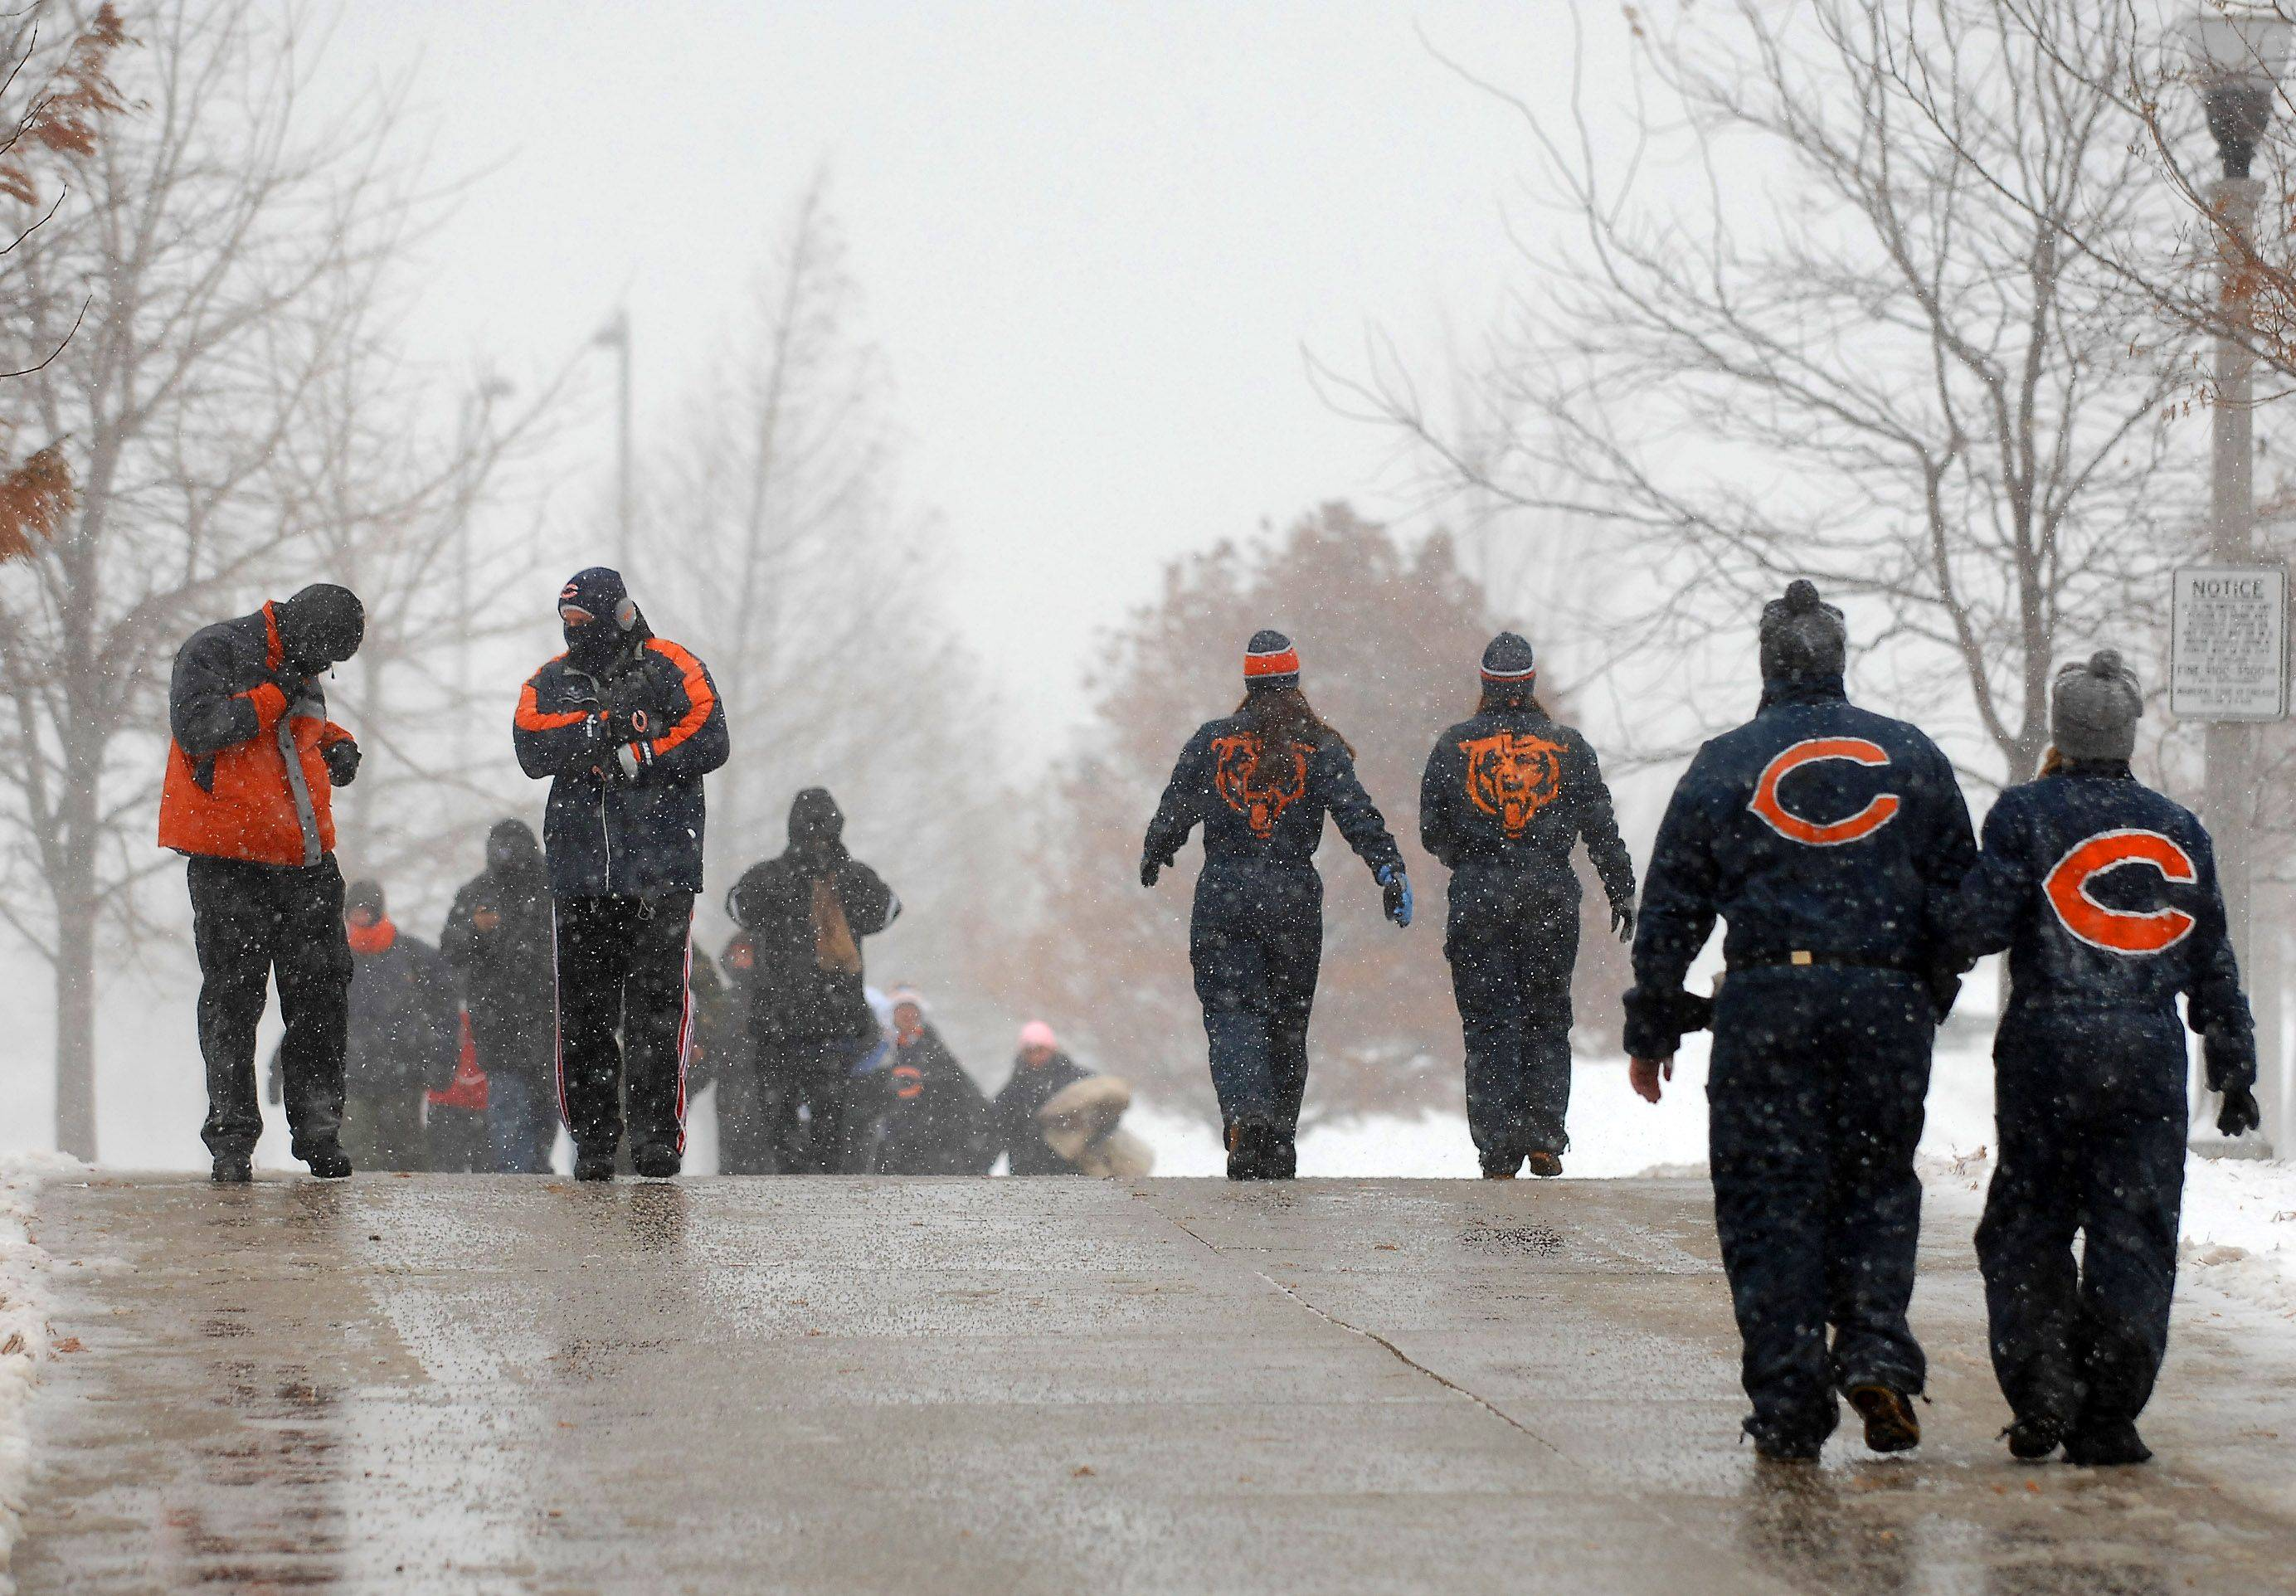 Fans walk through blowing snow to get to the stadium before Sunday's game at Soldier Field in Chicago.